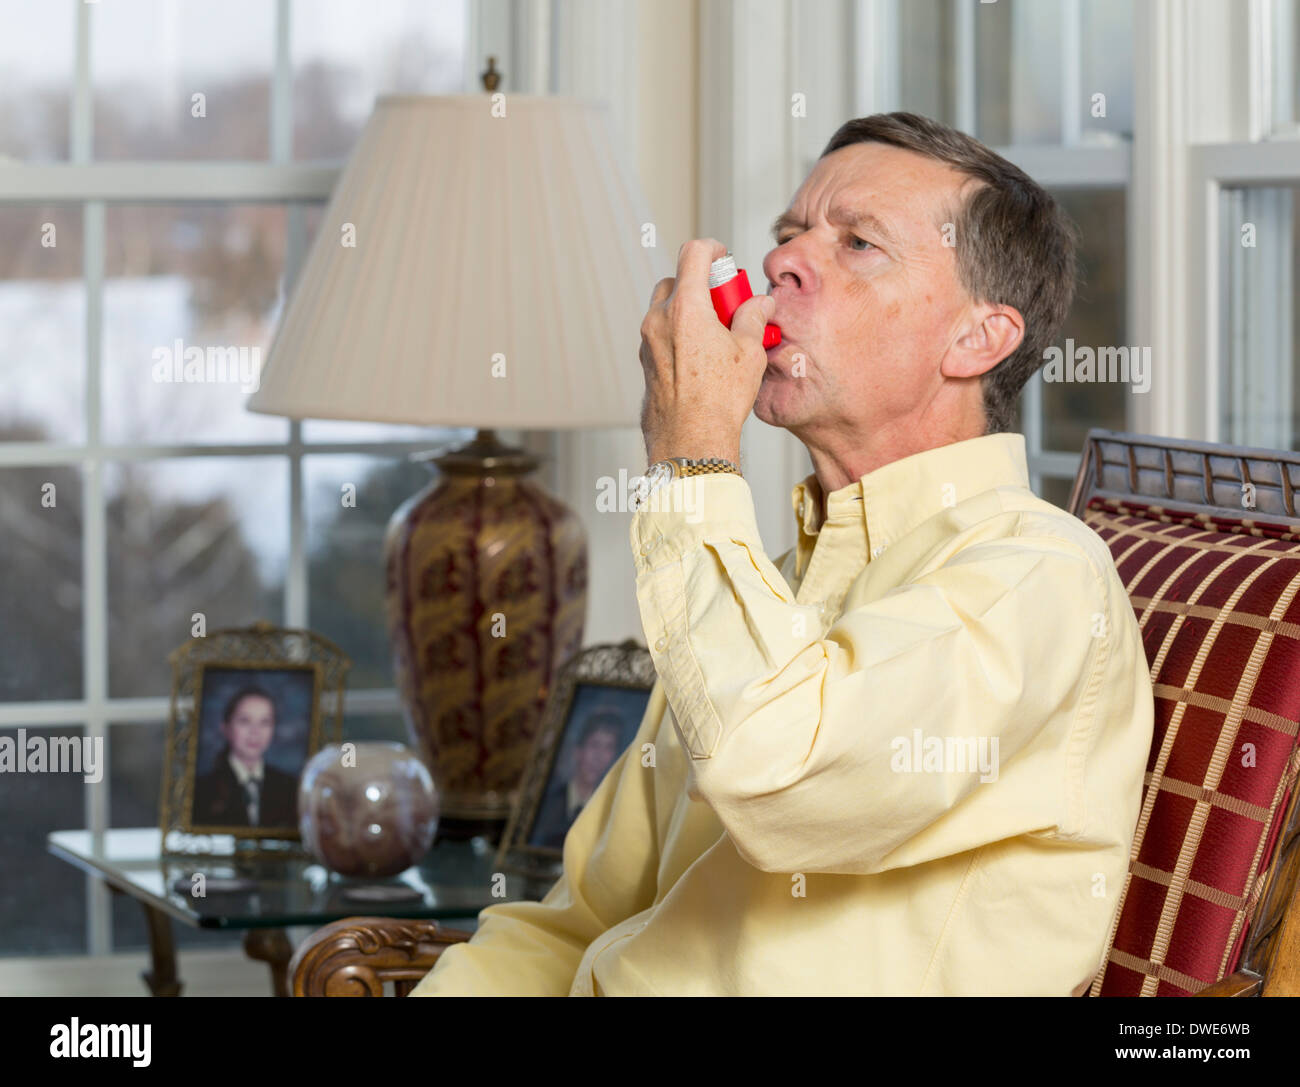 Senior, late middle-aged man at home using an asthma inhaler - Stock Image